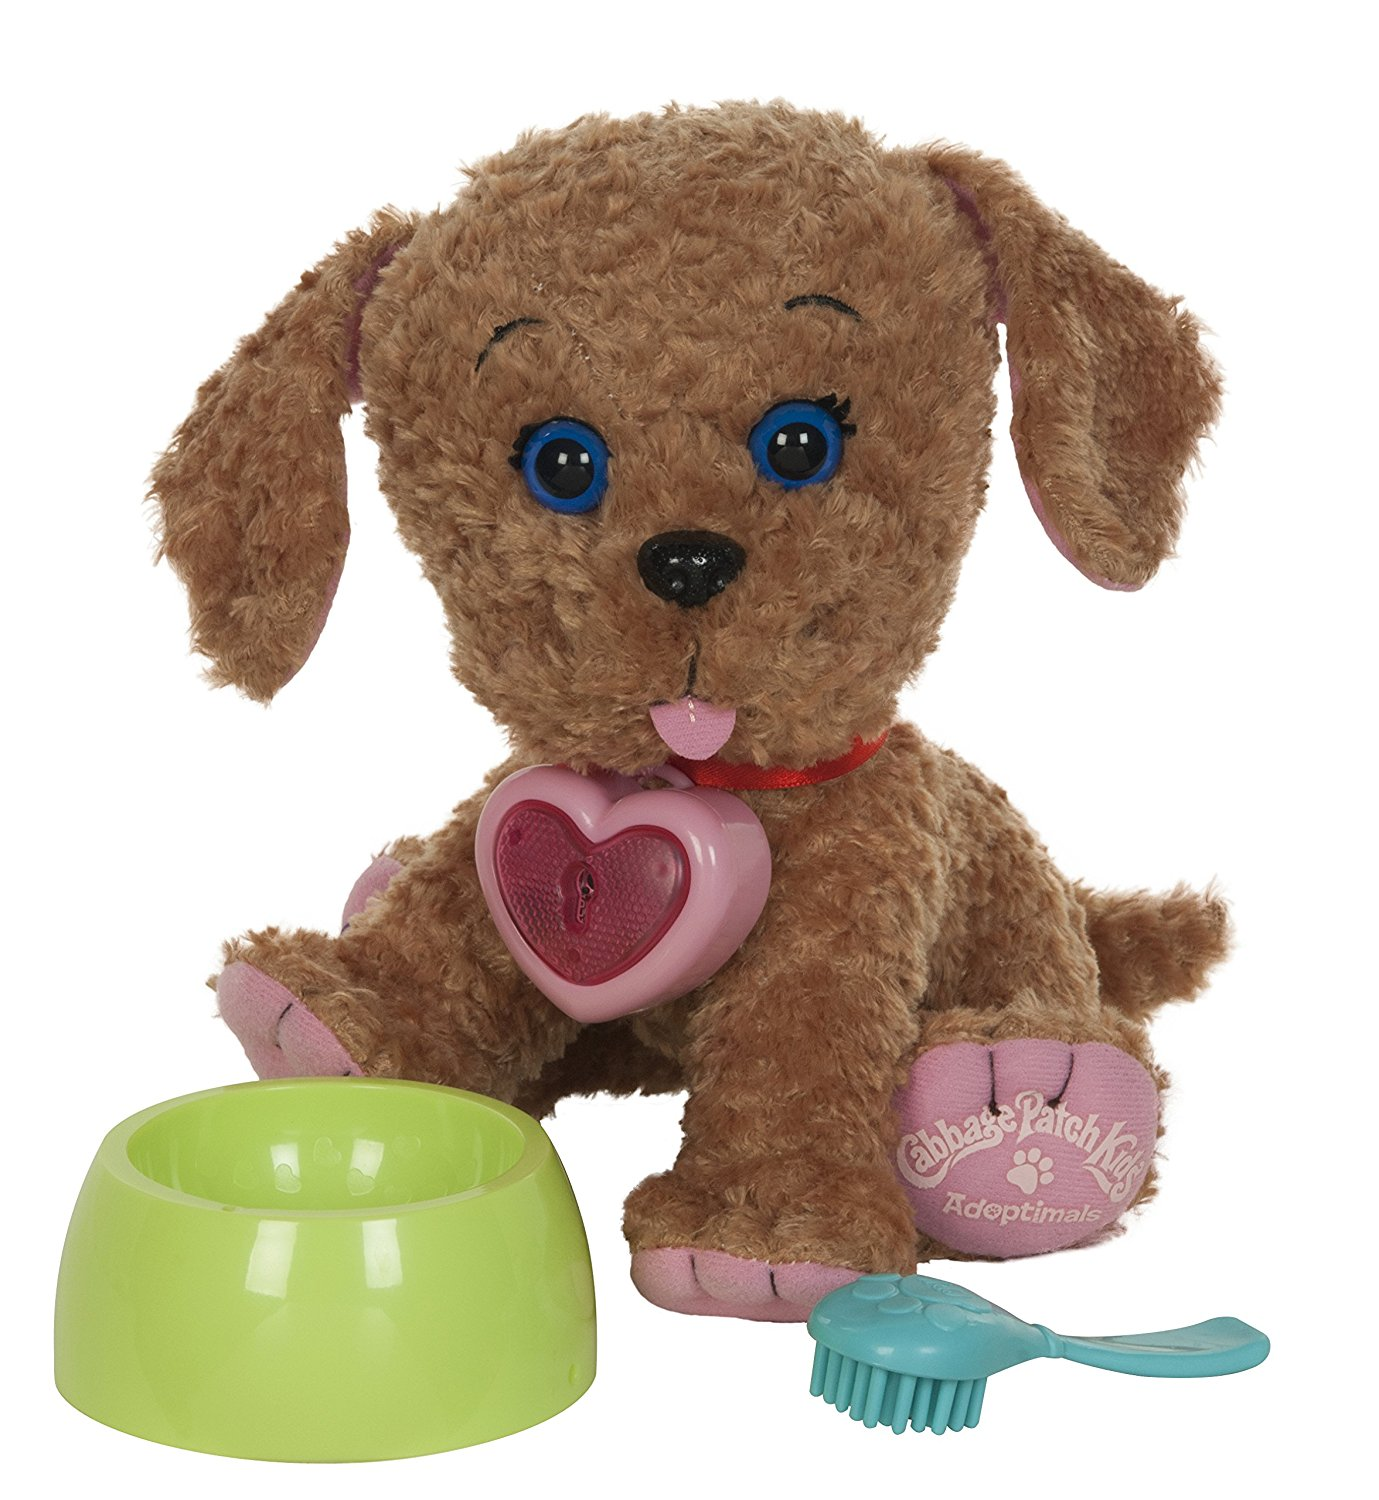 Adoptimals Labradoodle..., By Cabbage Patch Kids Ship from US by